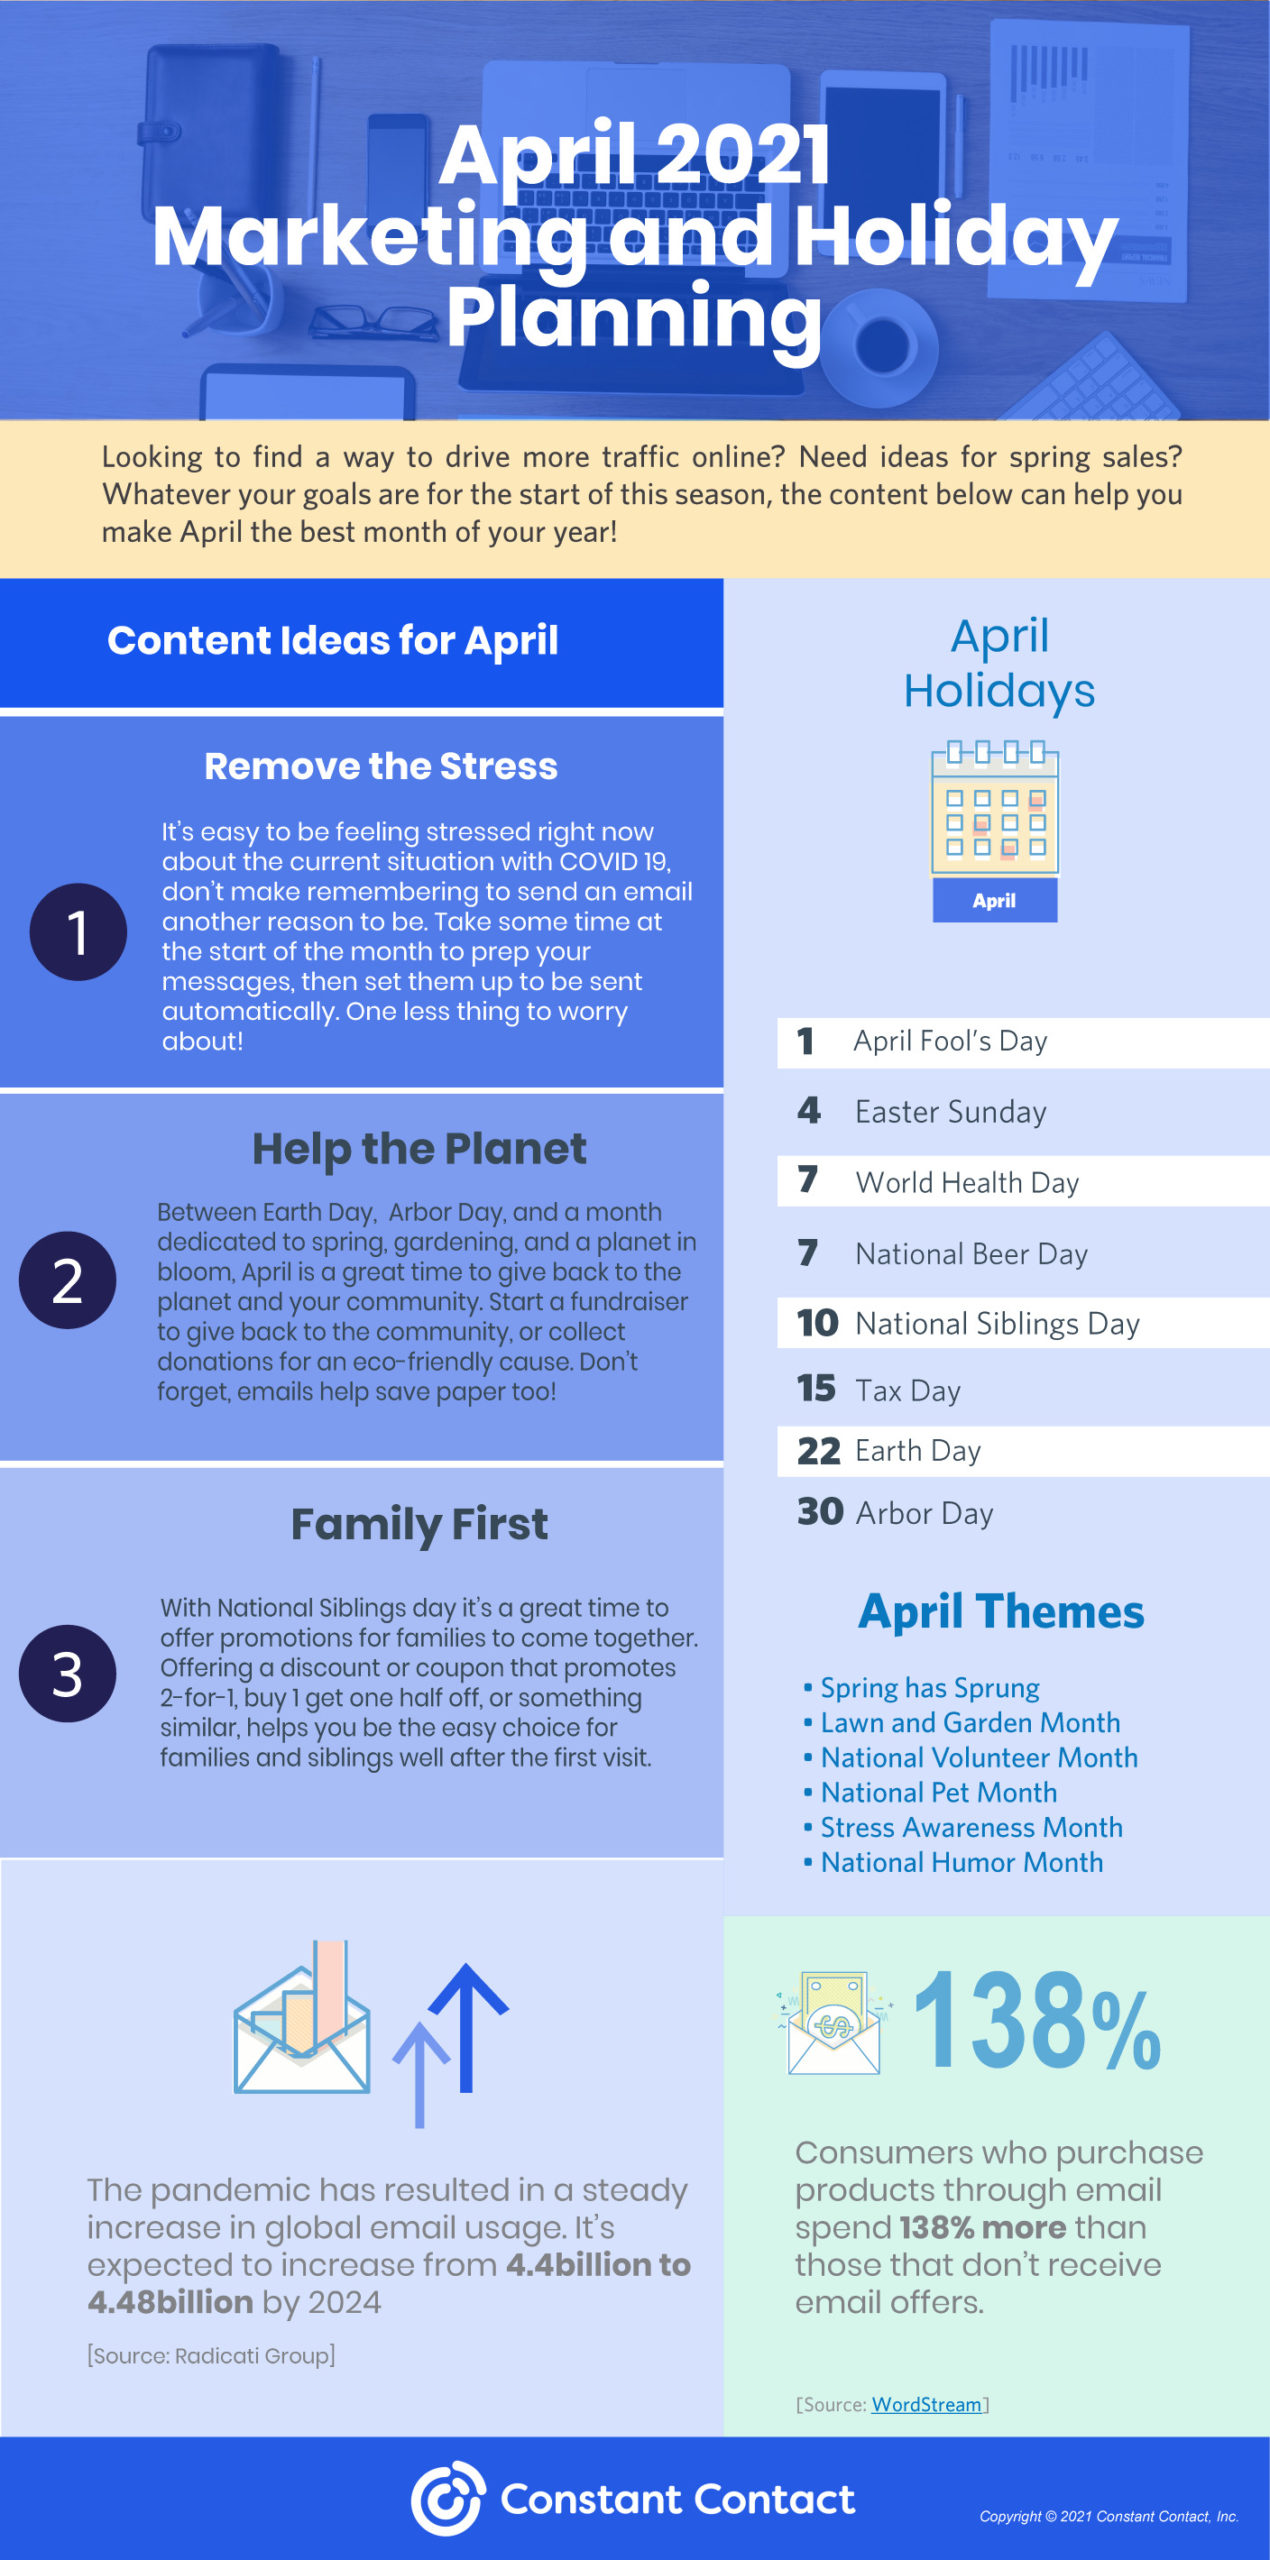 April holidays for marketing planning - 2021Infographic